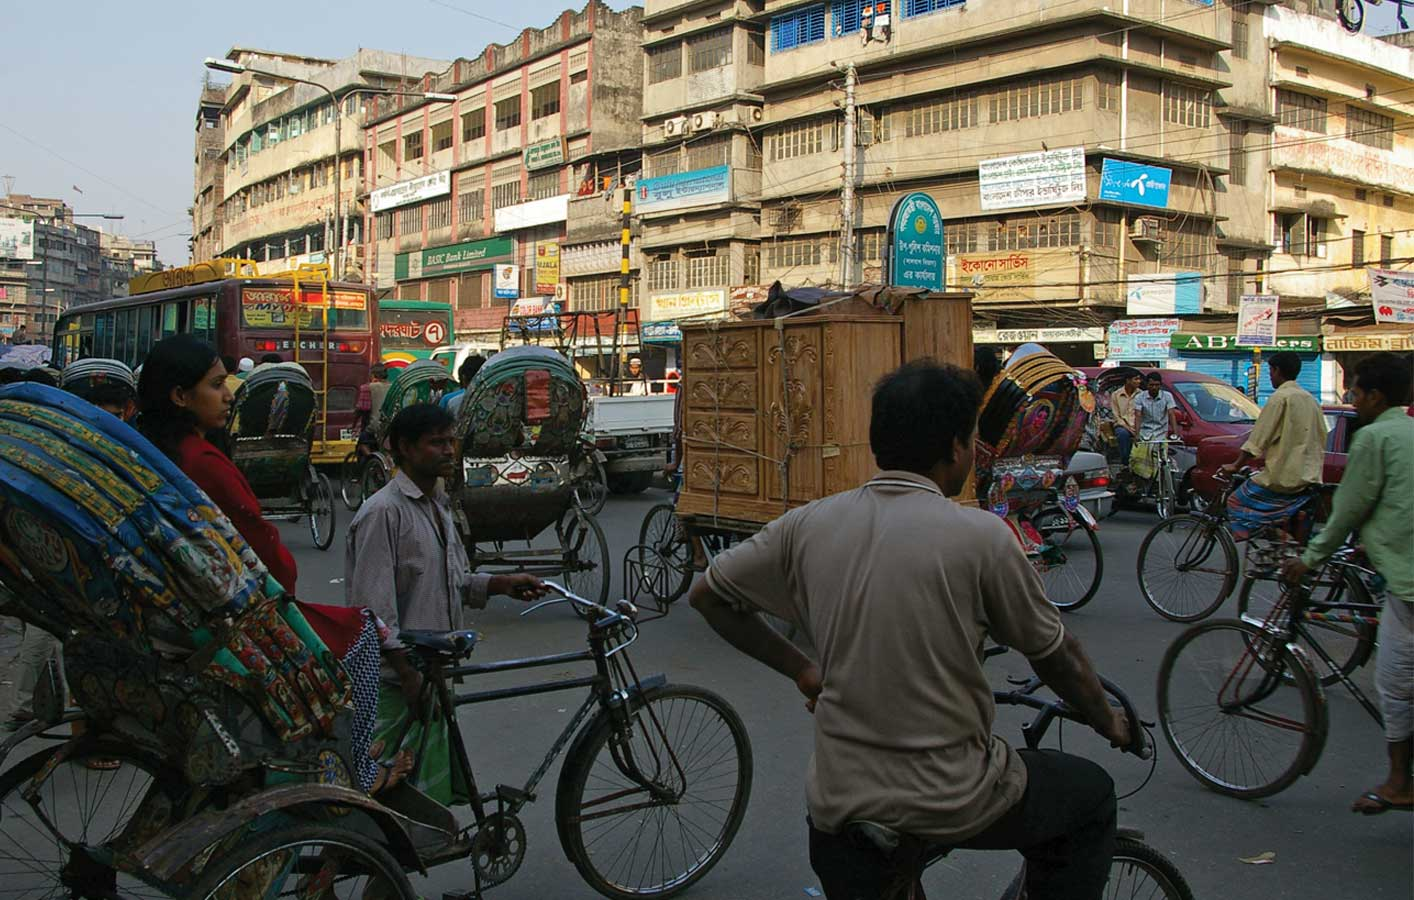 <p>Rickshaws account for a significant percentage of traffic in Dhaka.</p>